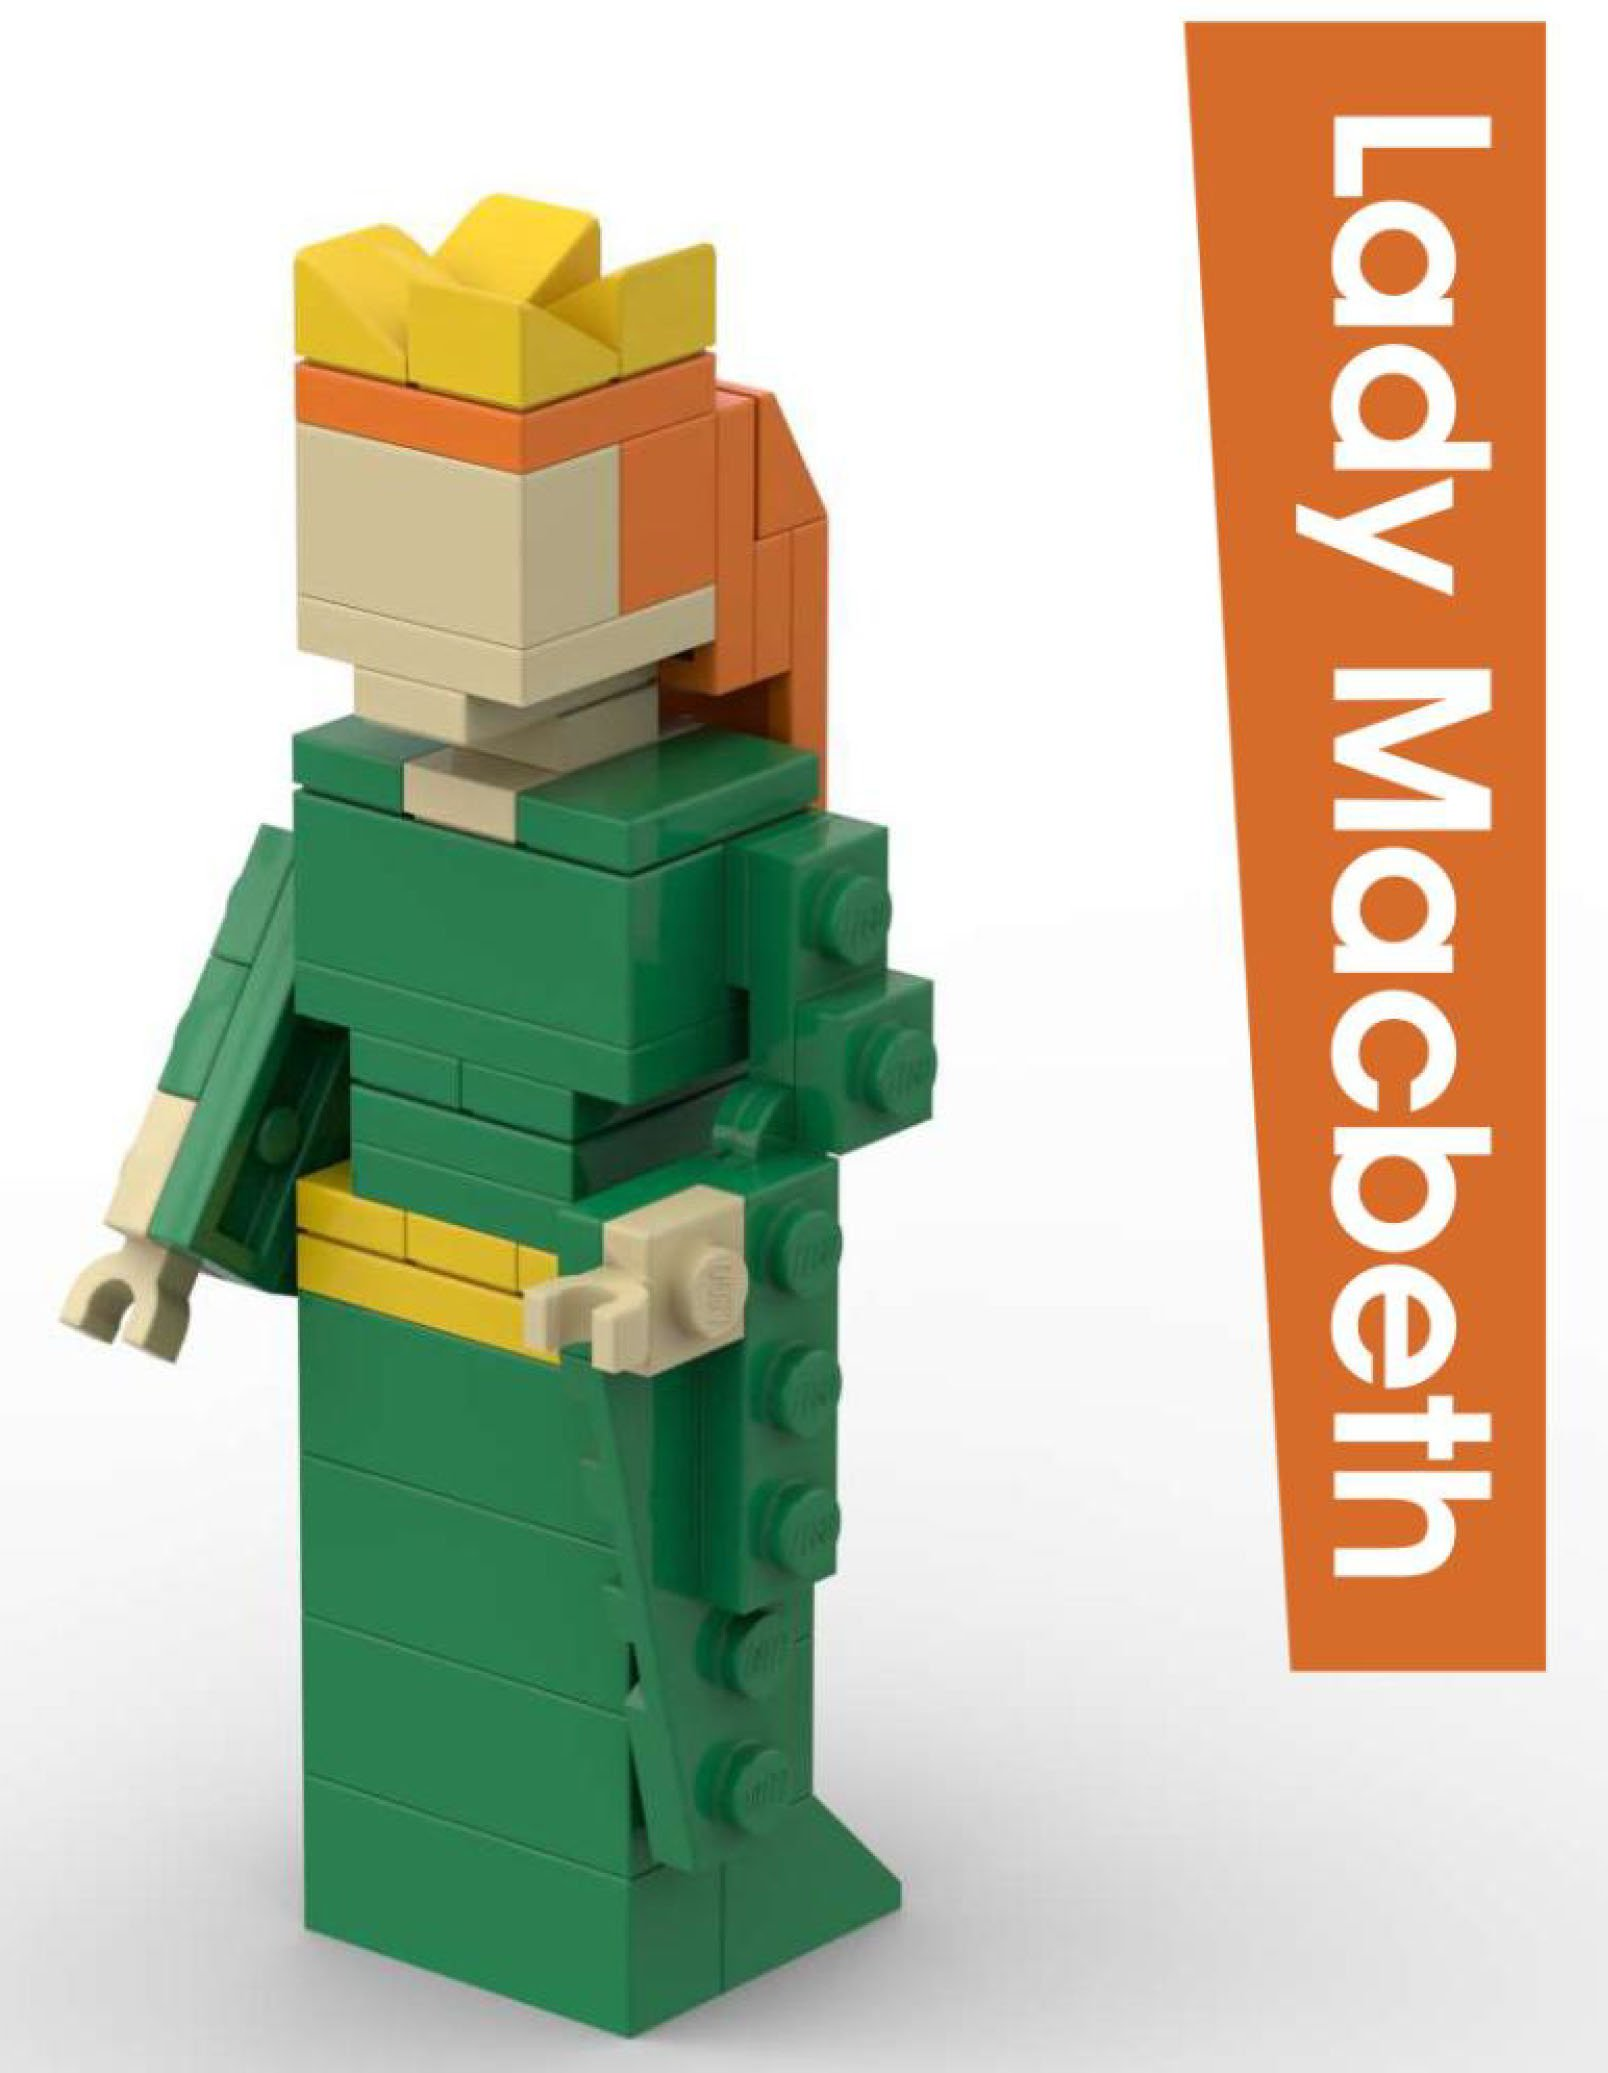 Lego Lady Macbeth